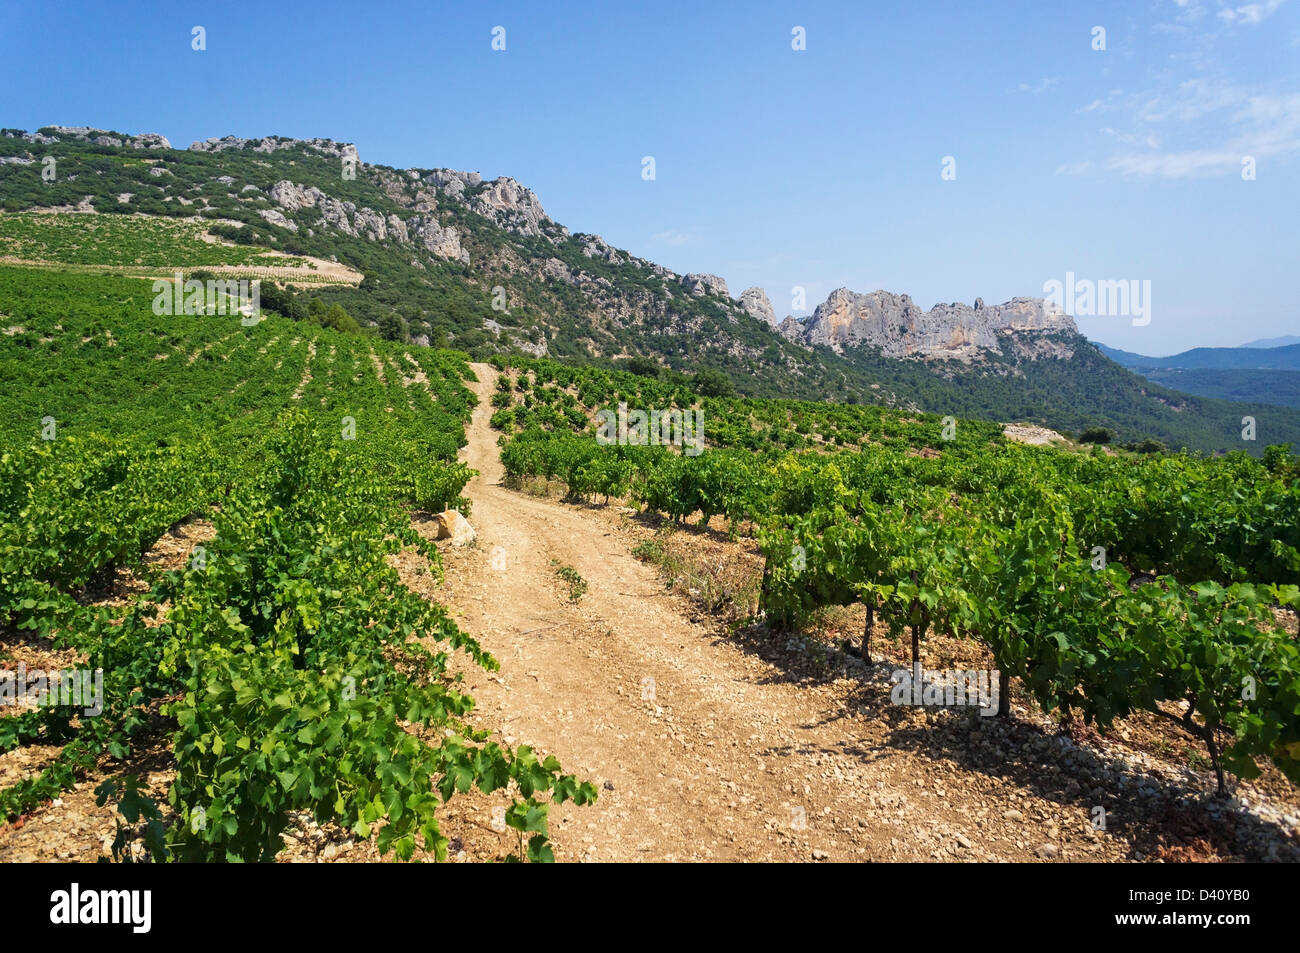 Vineyards in the summer in the Dentelle de Montmirail National Park, Vacluse, Provence, South of France, Europe - Stock Image